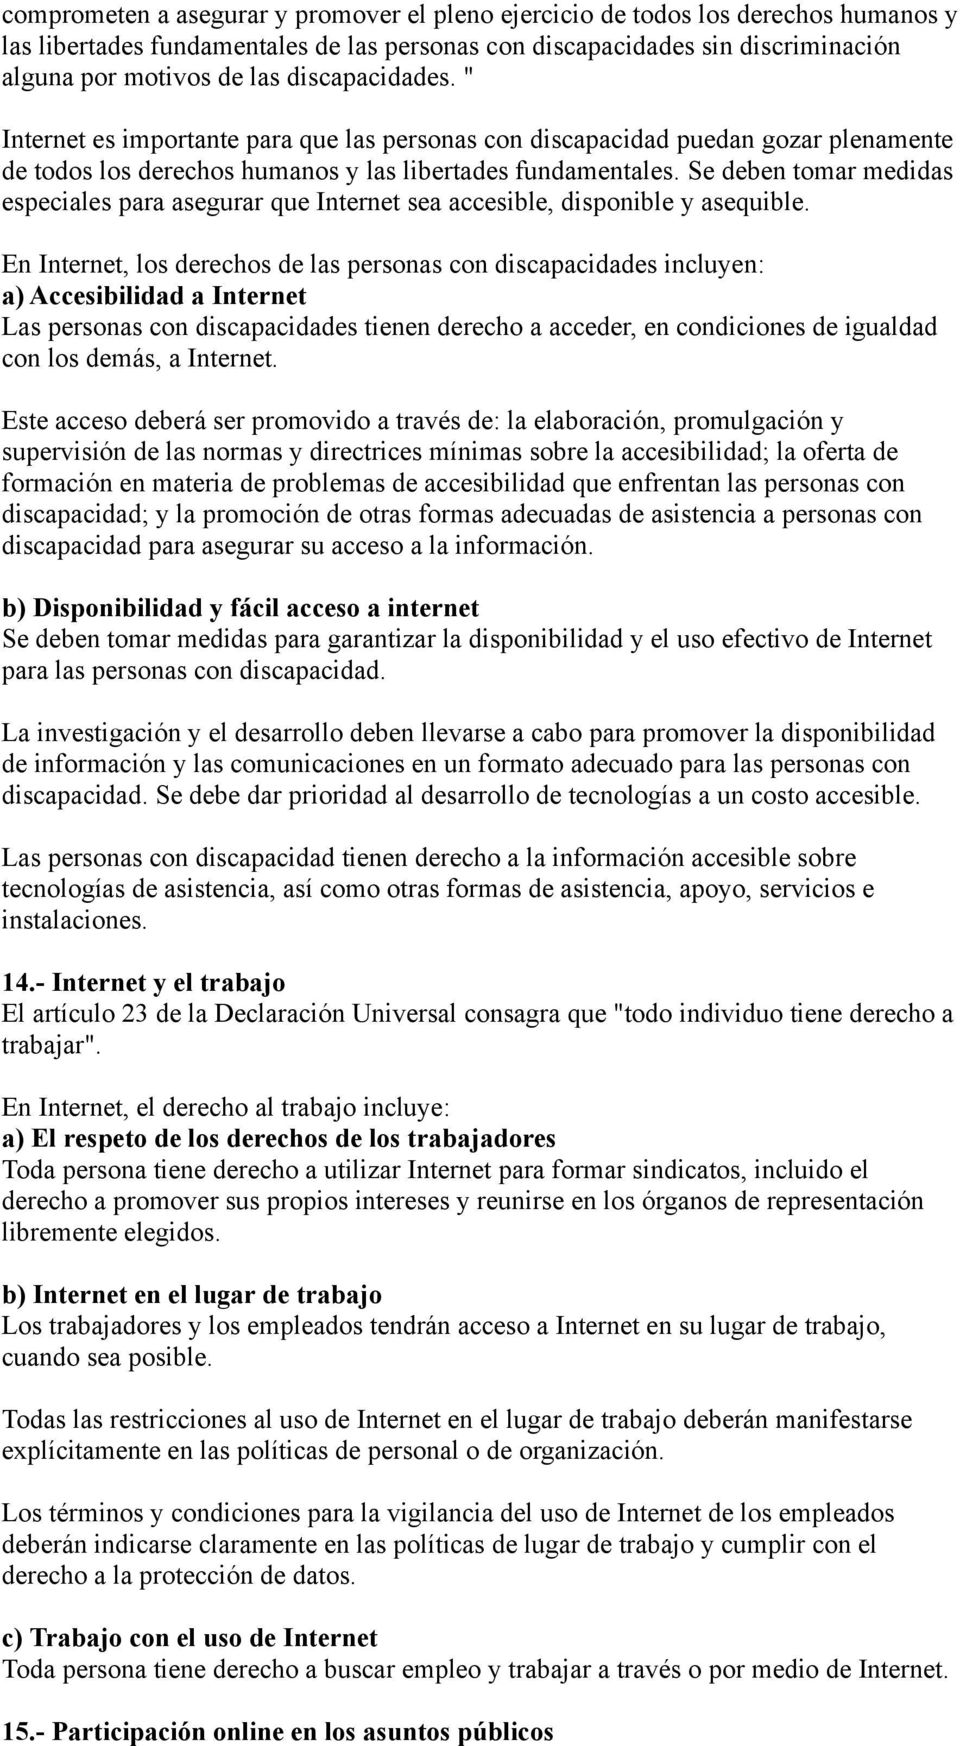 Se deben tomar medidas especiales para asegurar que Internet sea accesible, disponible y asequible.